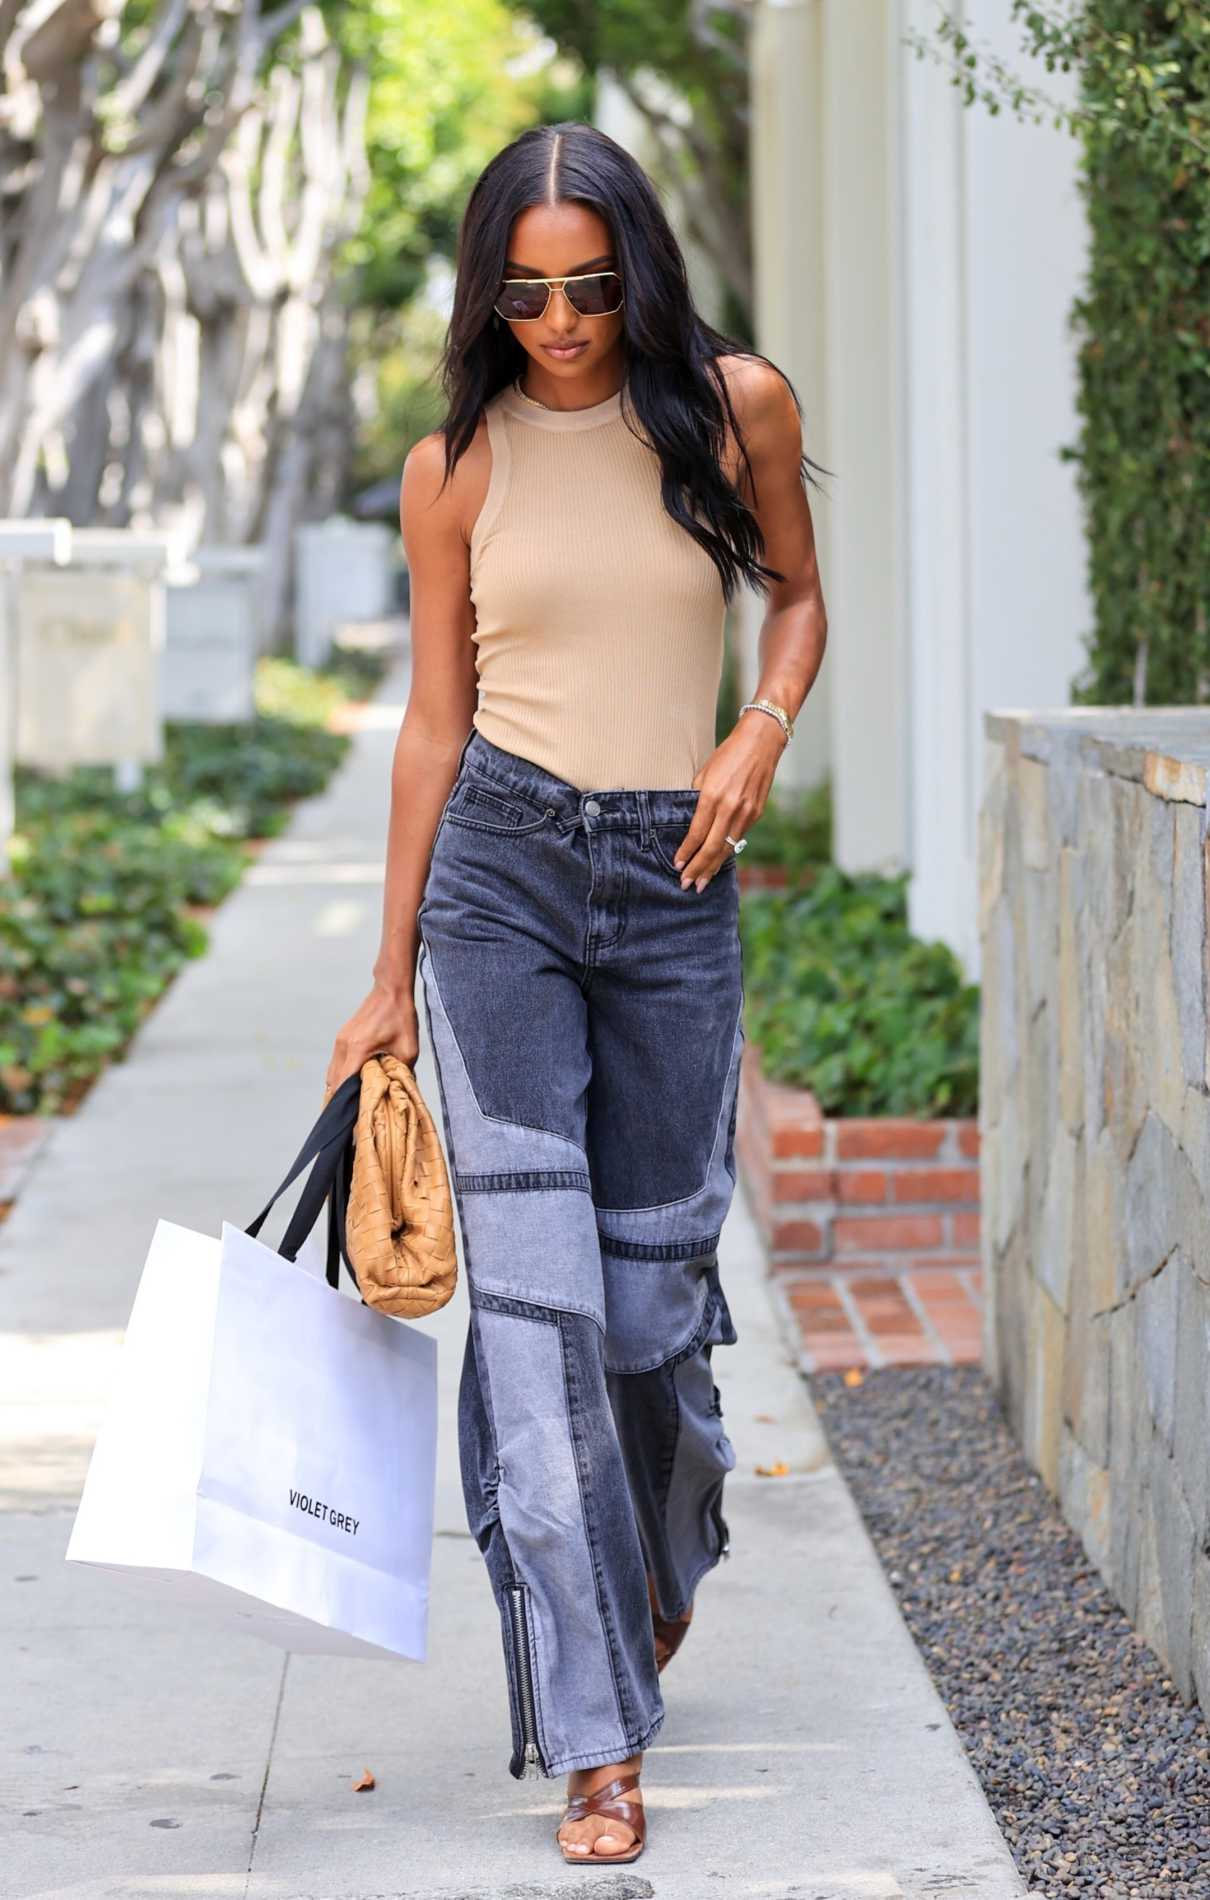 Jasmine Tookes in a Beige Tank Top Was Seen Out in Los Angeles 10/12/2021